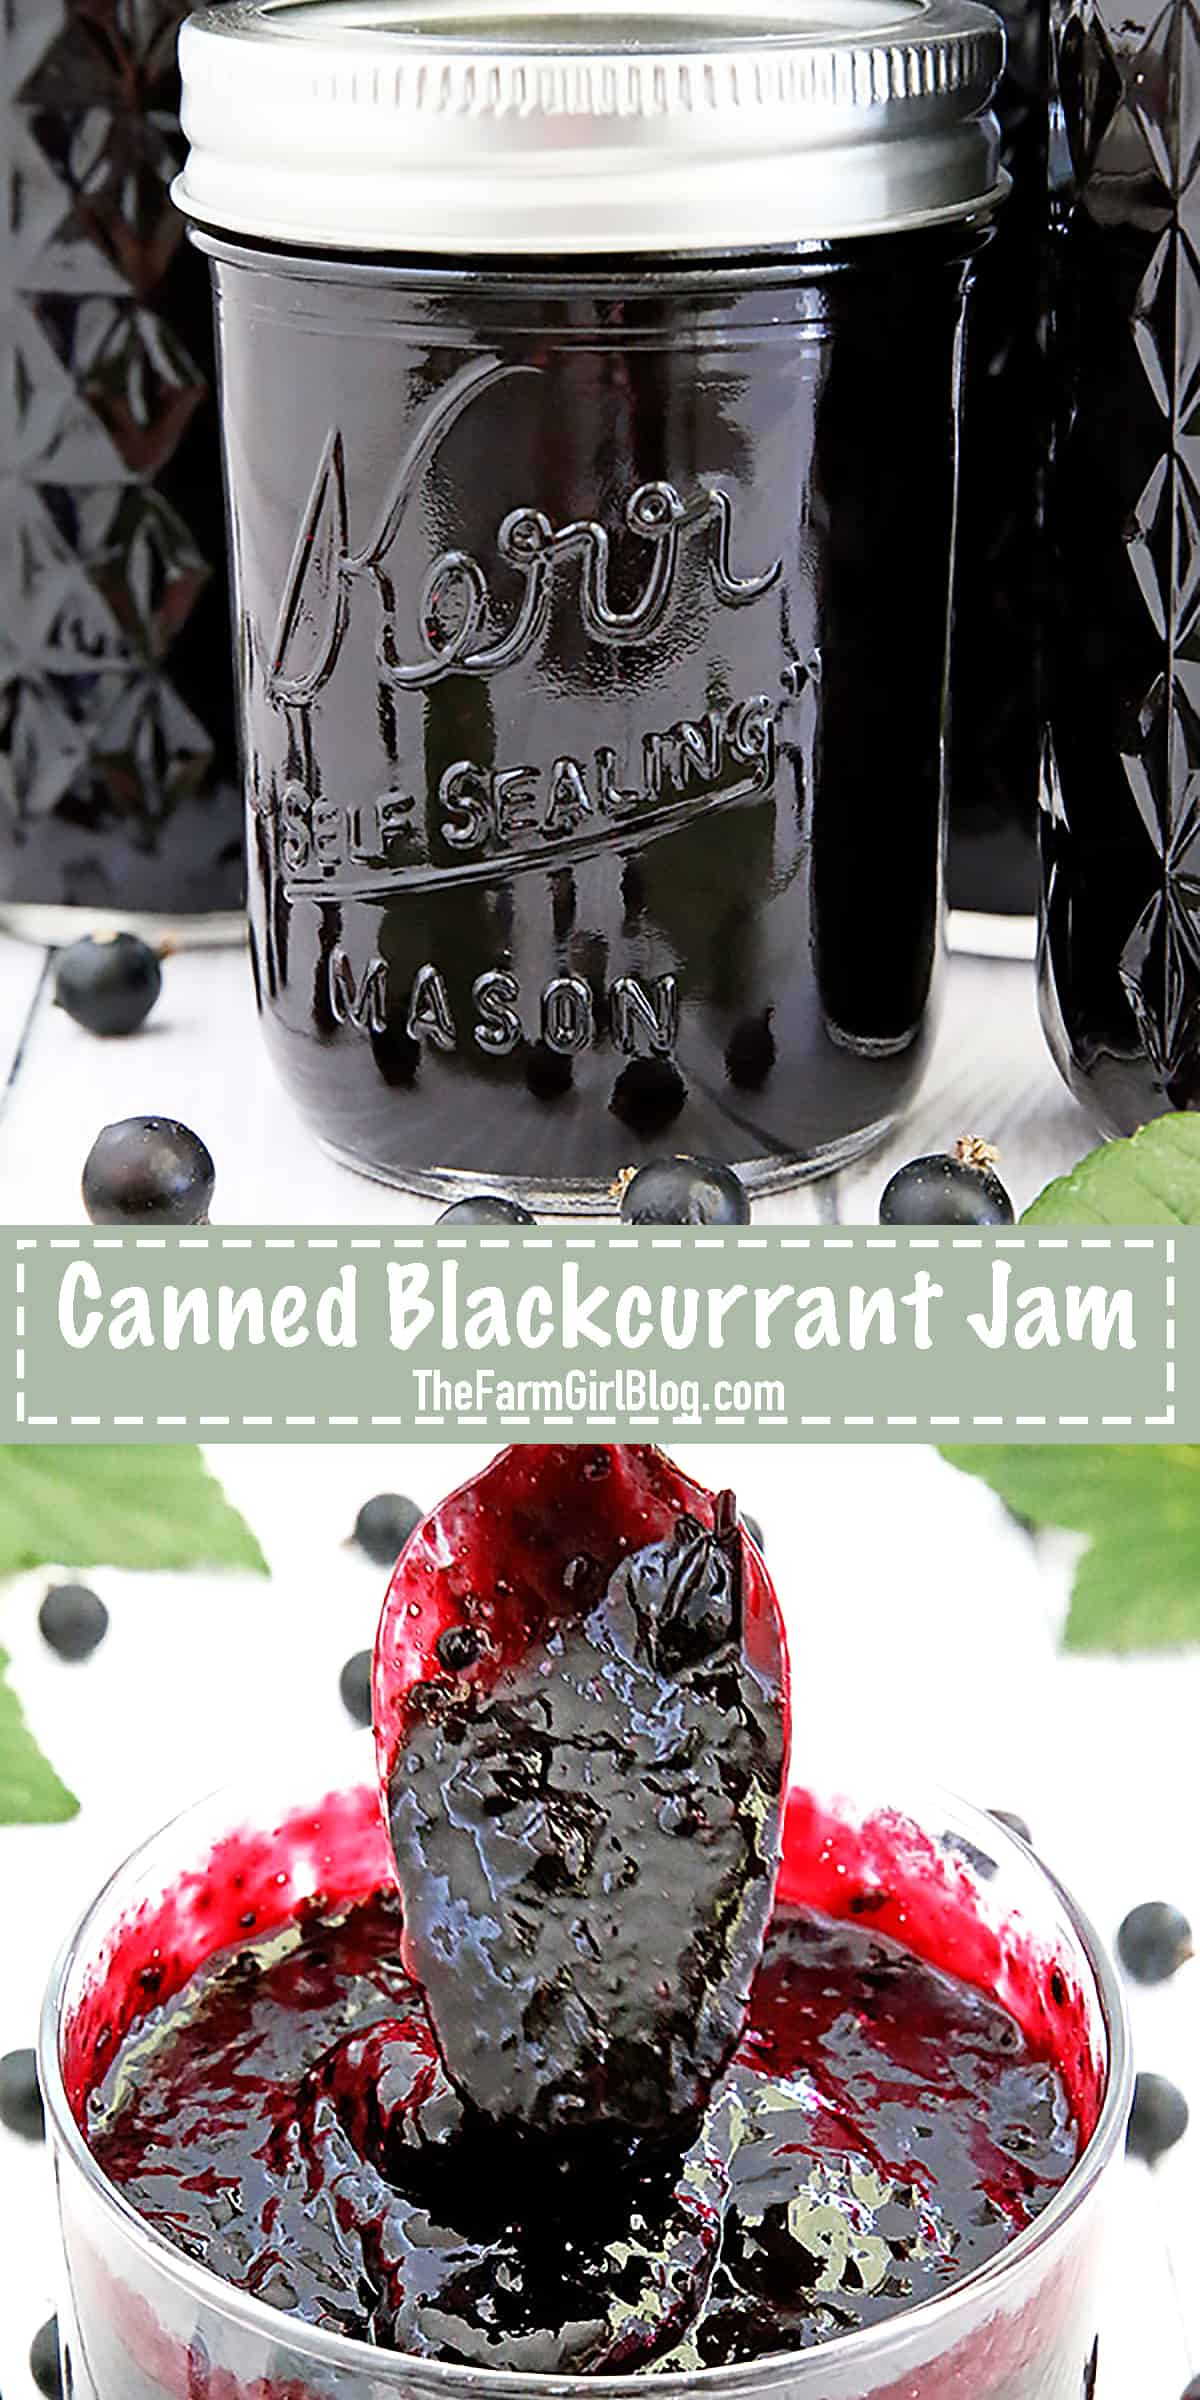 Have you ever tried blackcurrant jam? It's one of my favorite jams. Canned Blackcurrant Jam Recipe is much easier to make than you can imagine. I have several blackcurrant bushes in my garden. The jam comes into production fairly